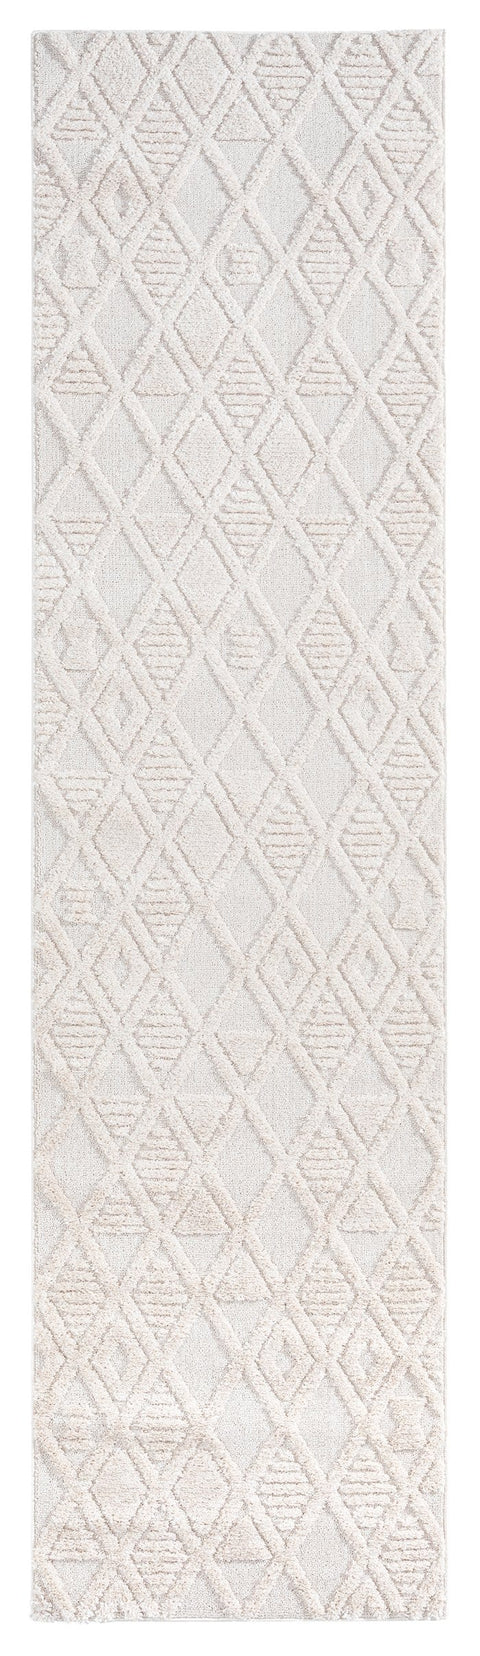 Kira Diamond Detail Textured Runner Rug